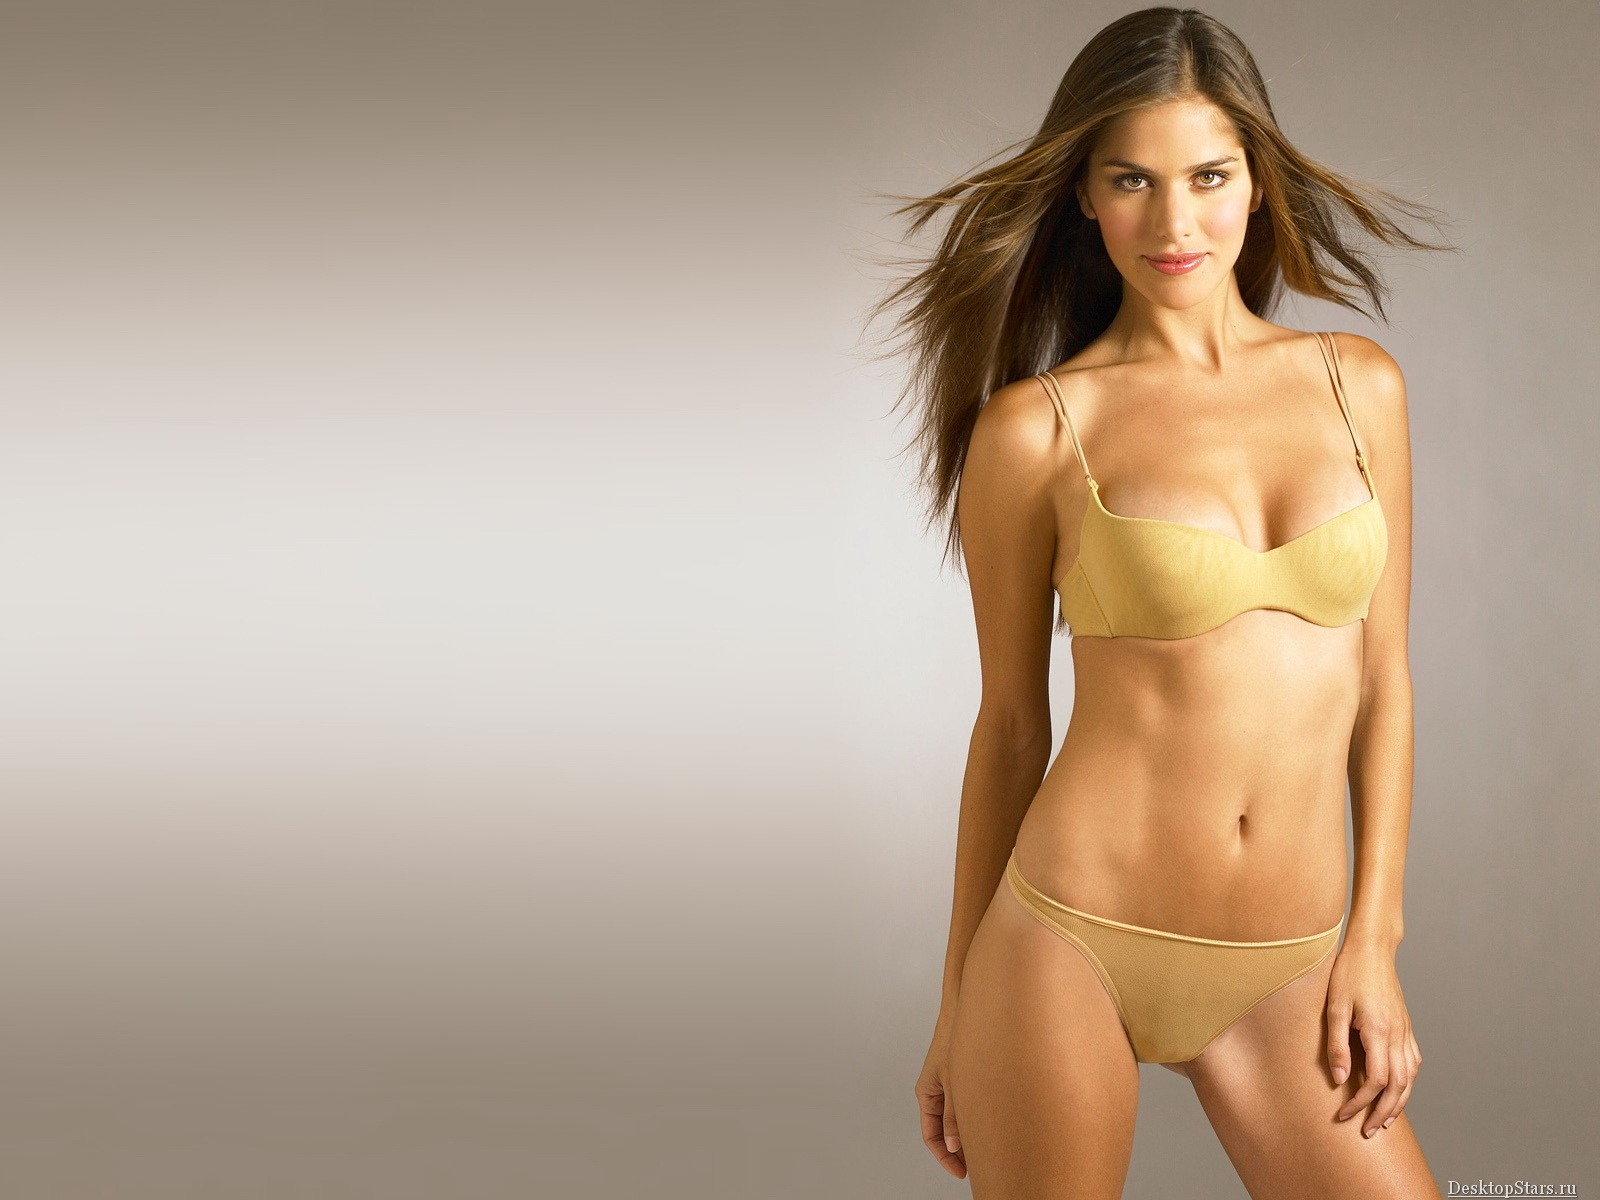 Anahi Gonzales #037 - 1600x1200 Wallpapers Pictures Photos Images